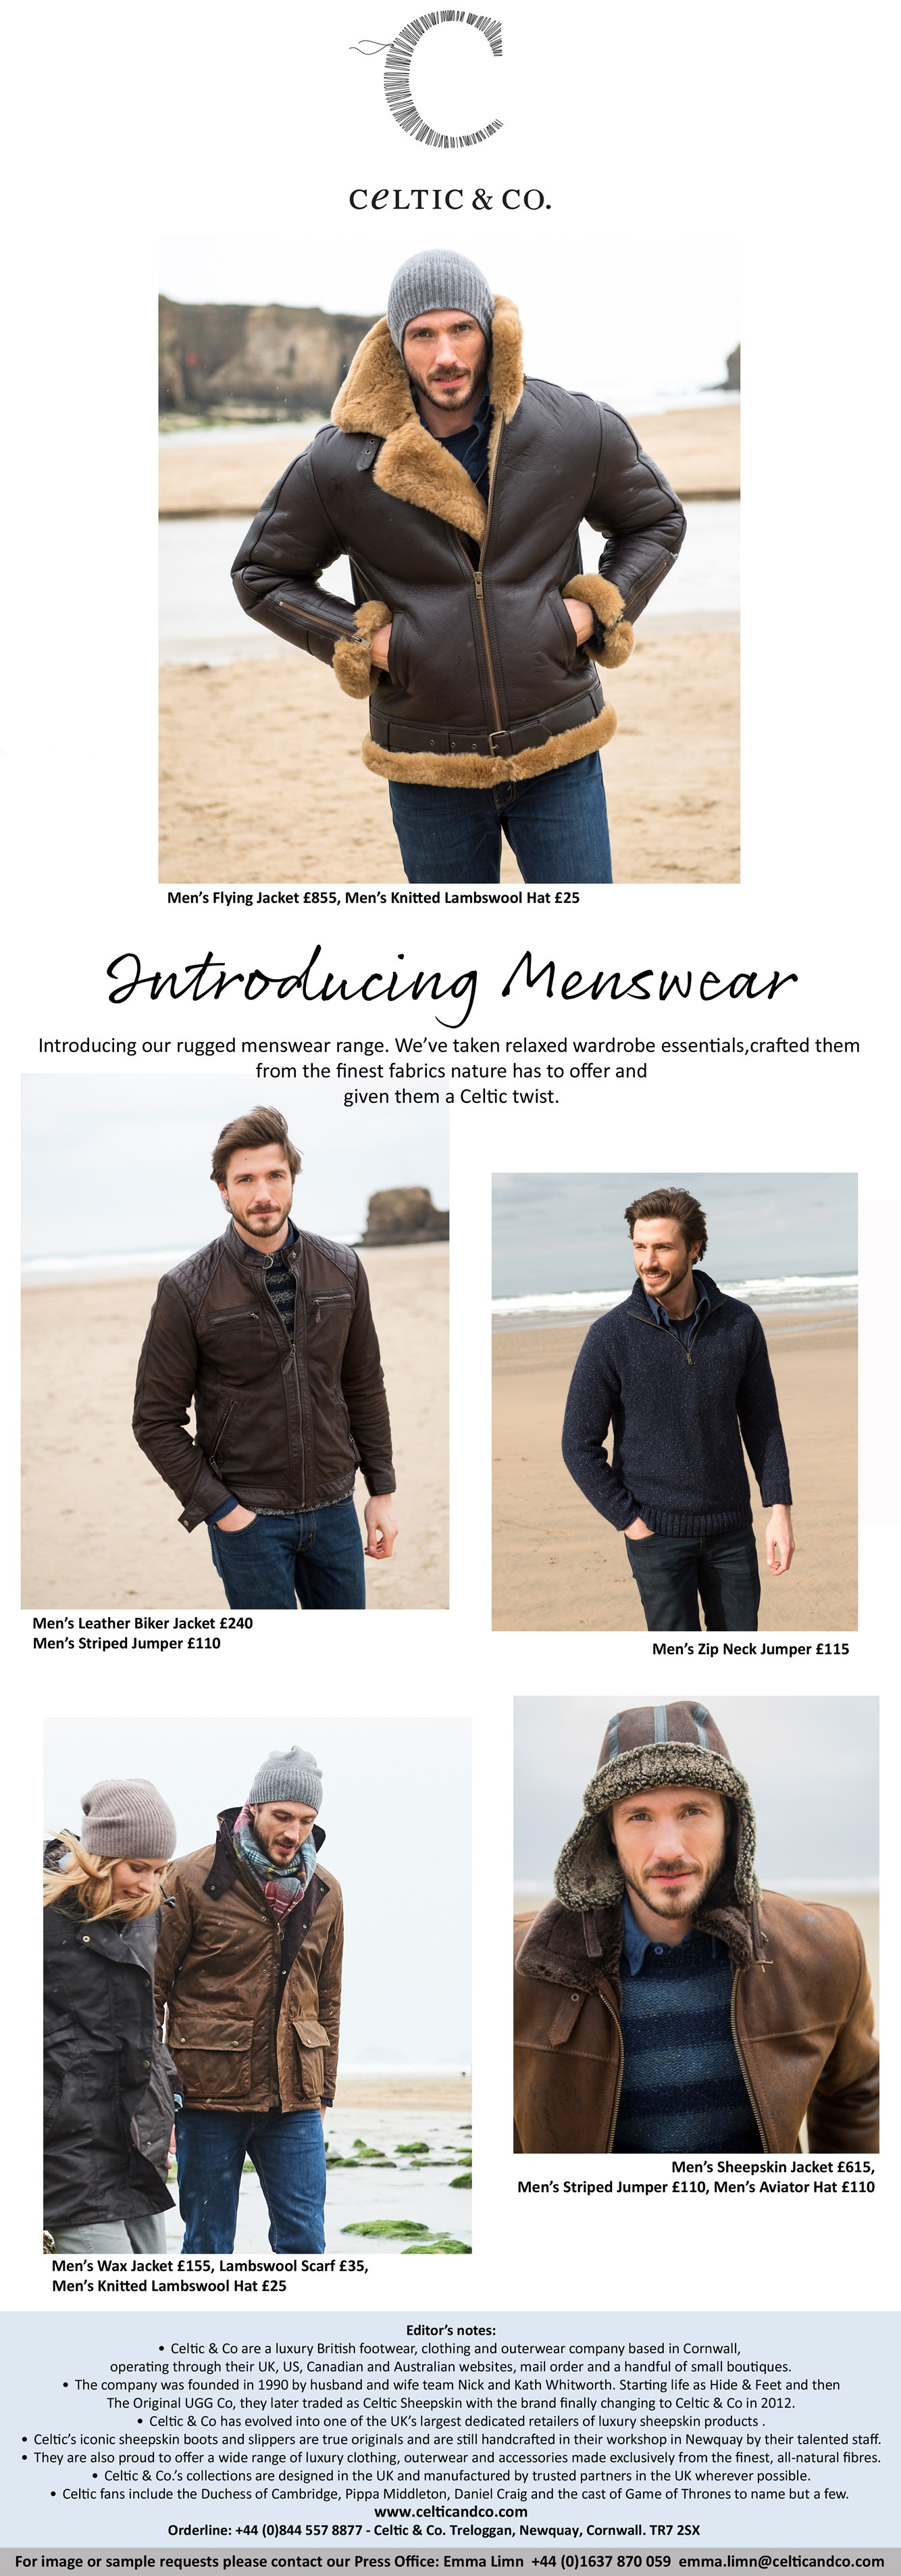 introducing menswear - celtic and co.jpg